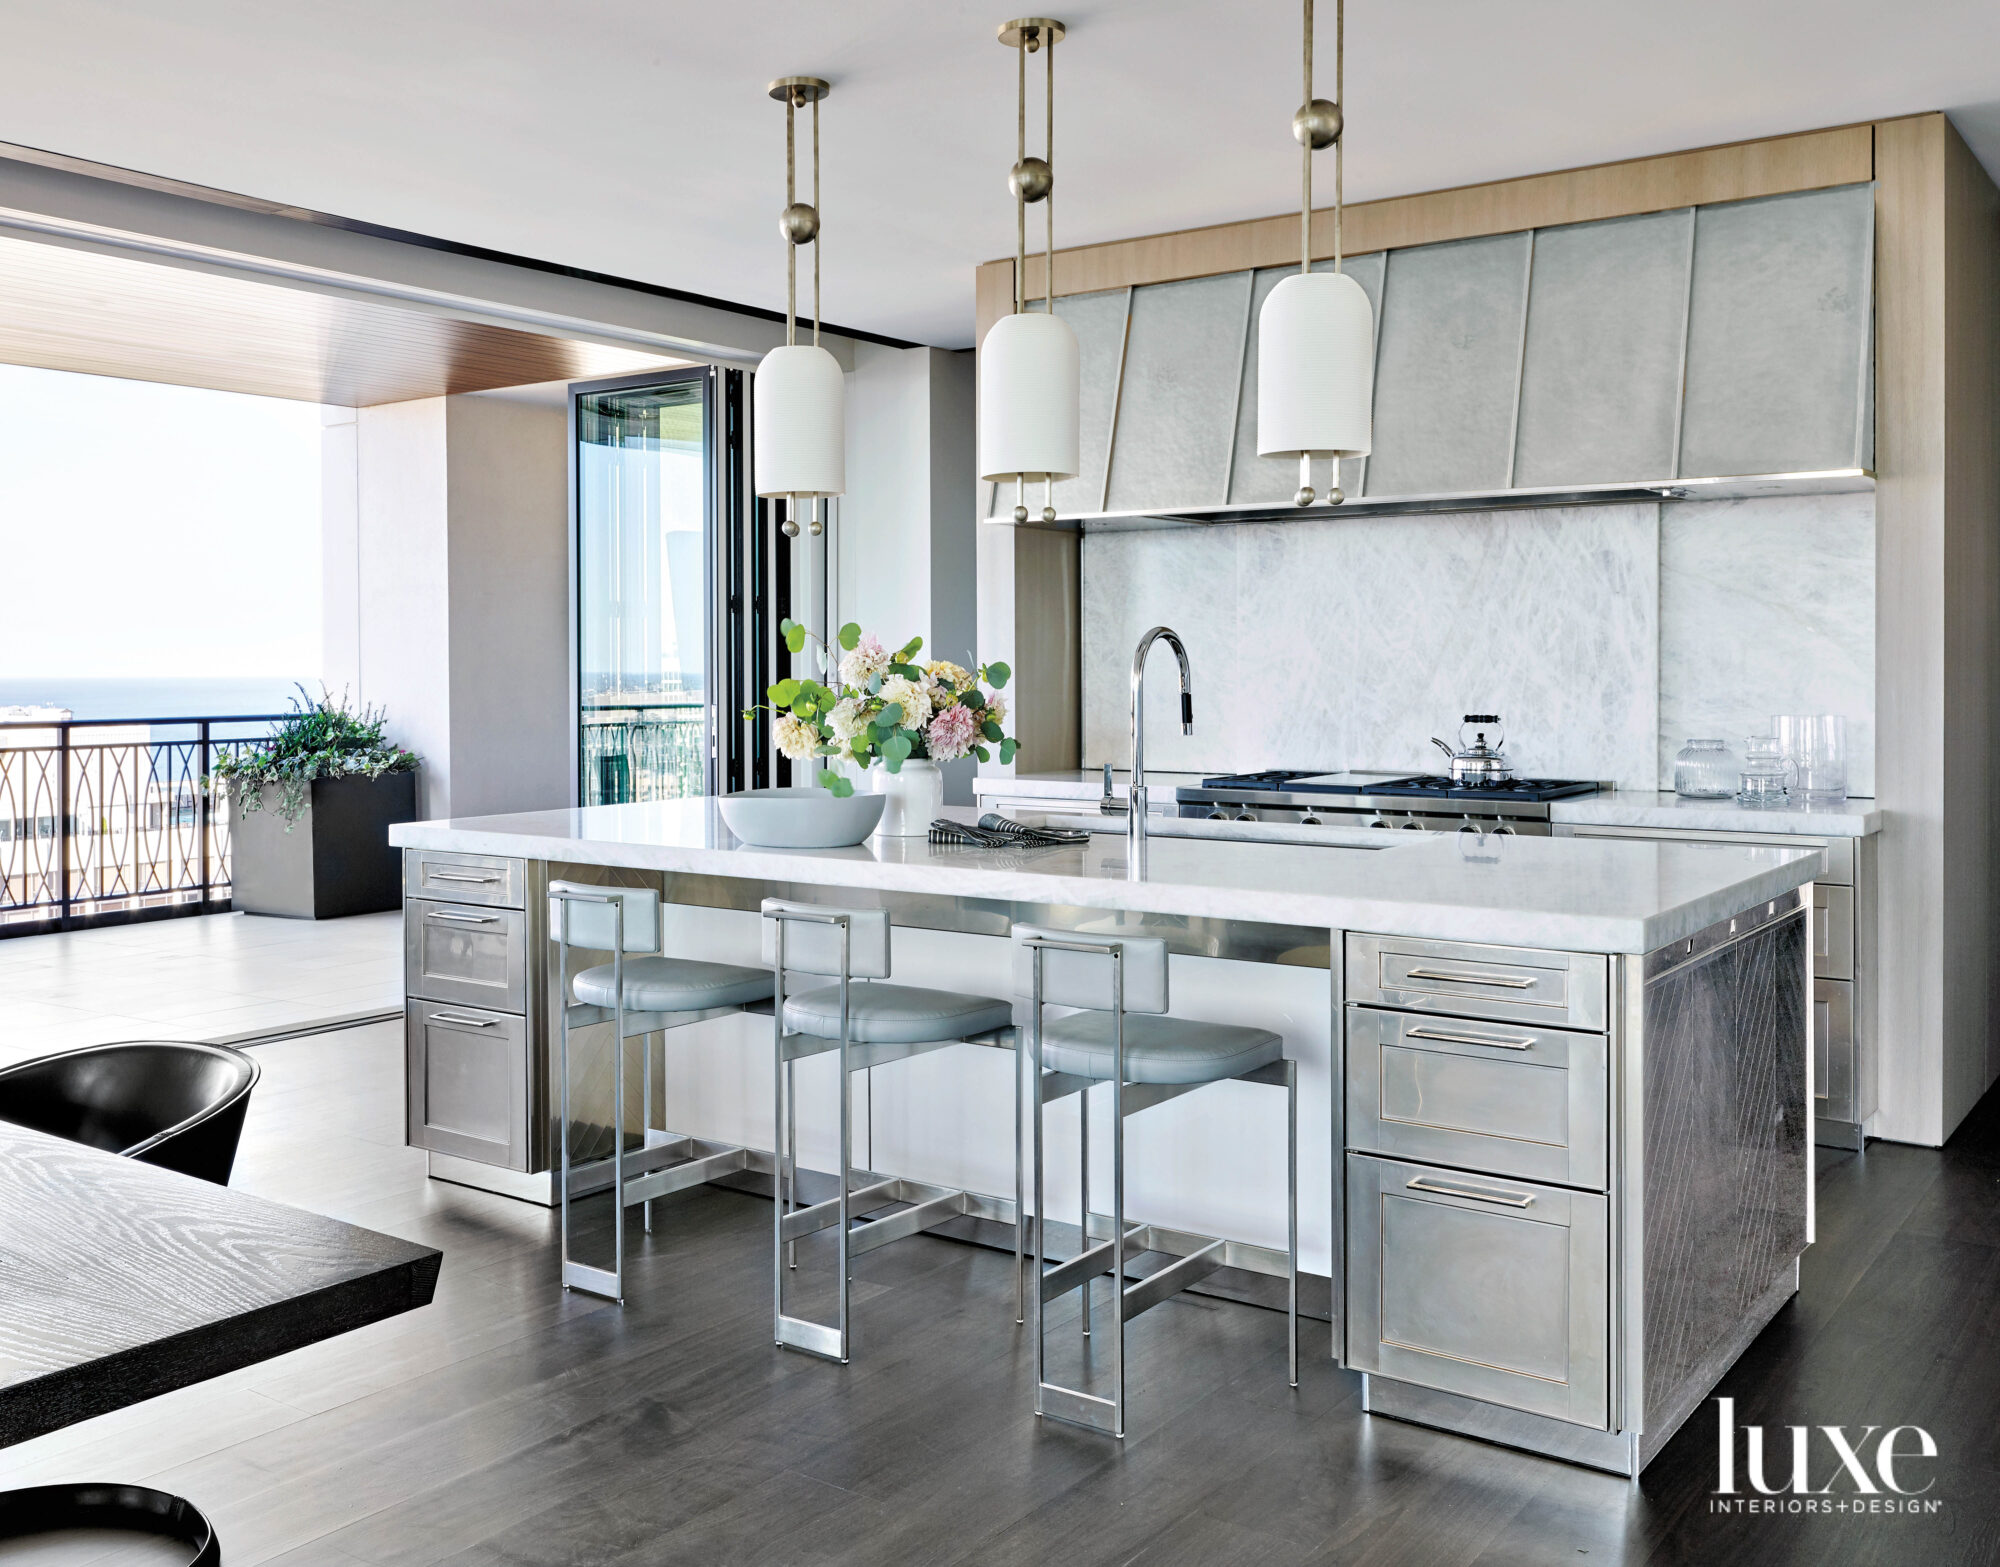 A modern kitchen with satin nickel finish cabinetry.